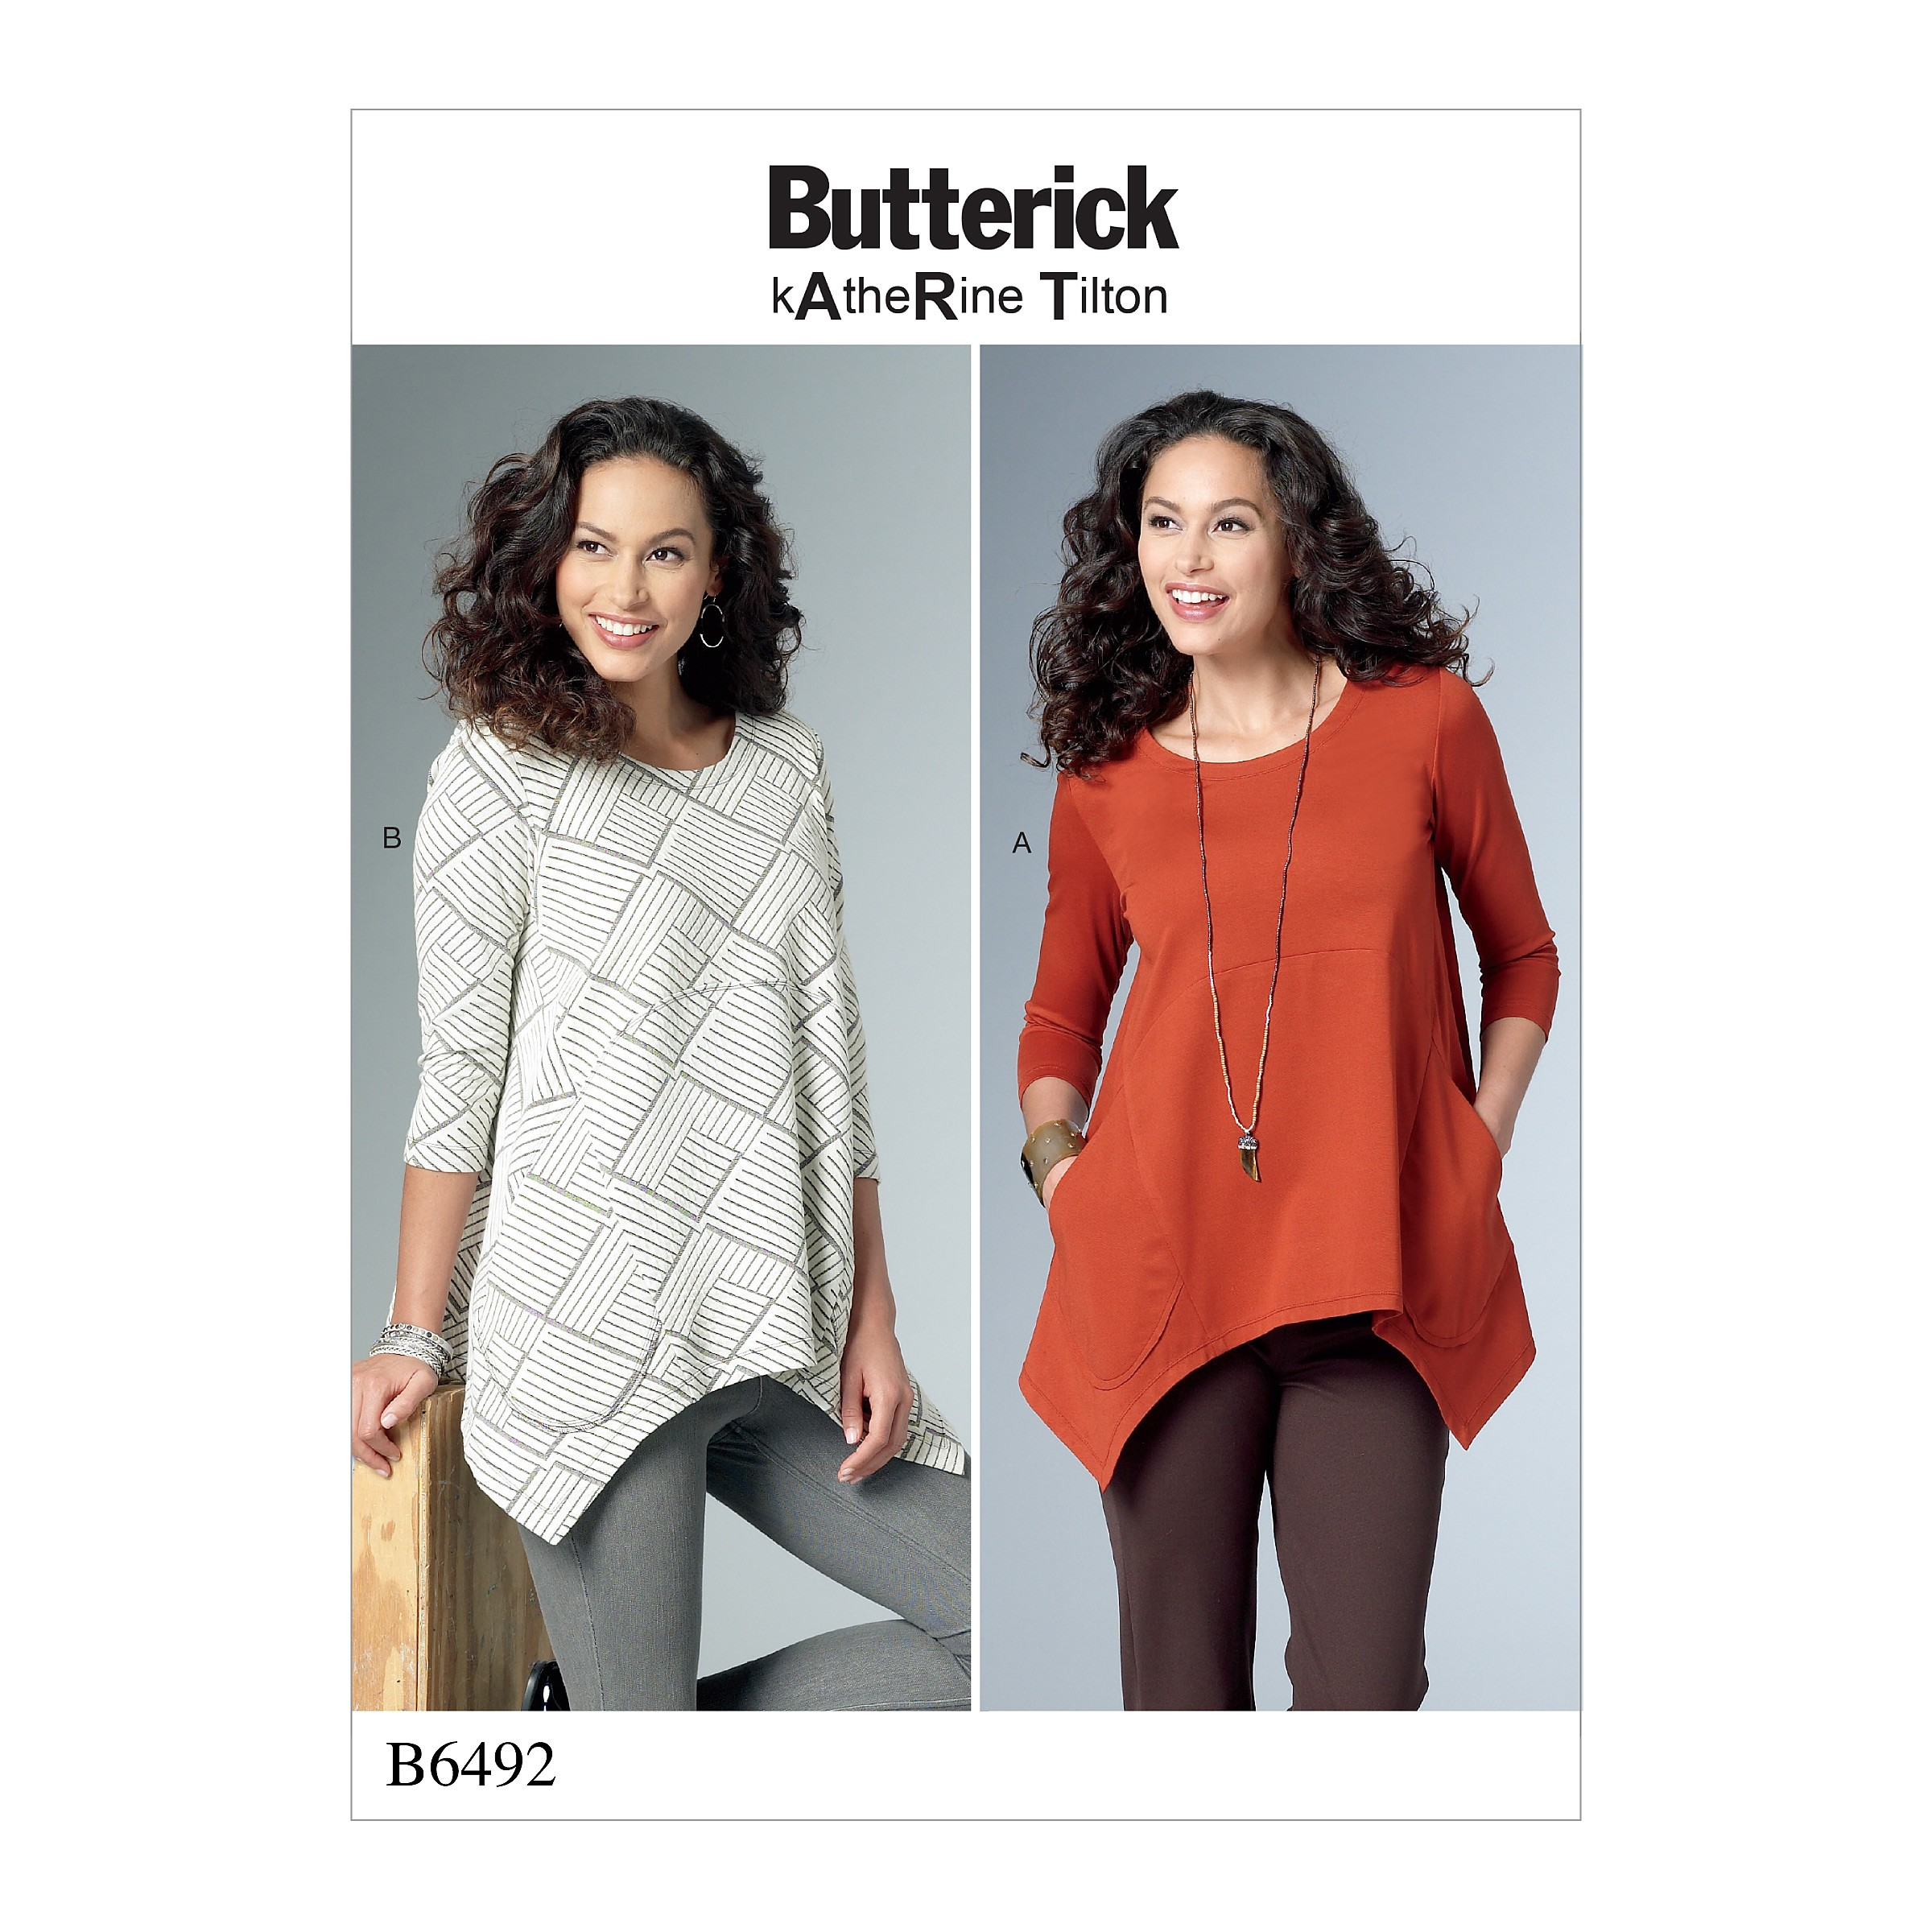 Butterick Sewing Pattern 6492 Misses' Loose Knit Tunics With Shaped Sides And Pockets.